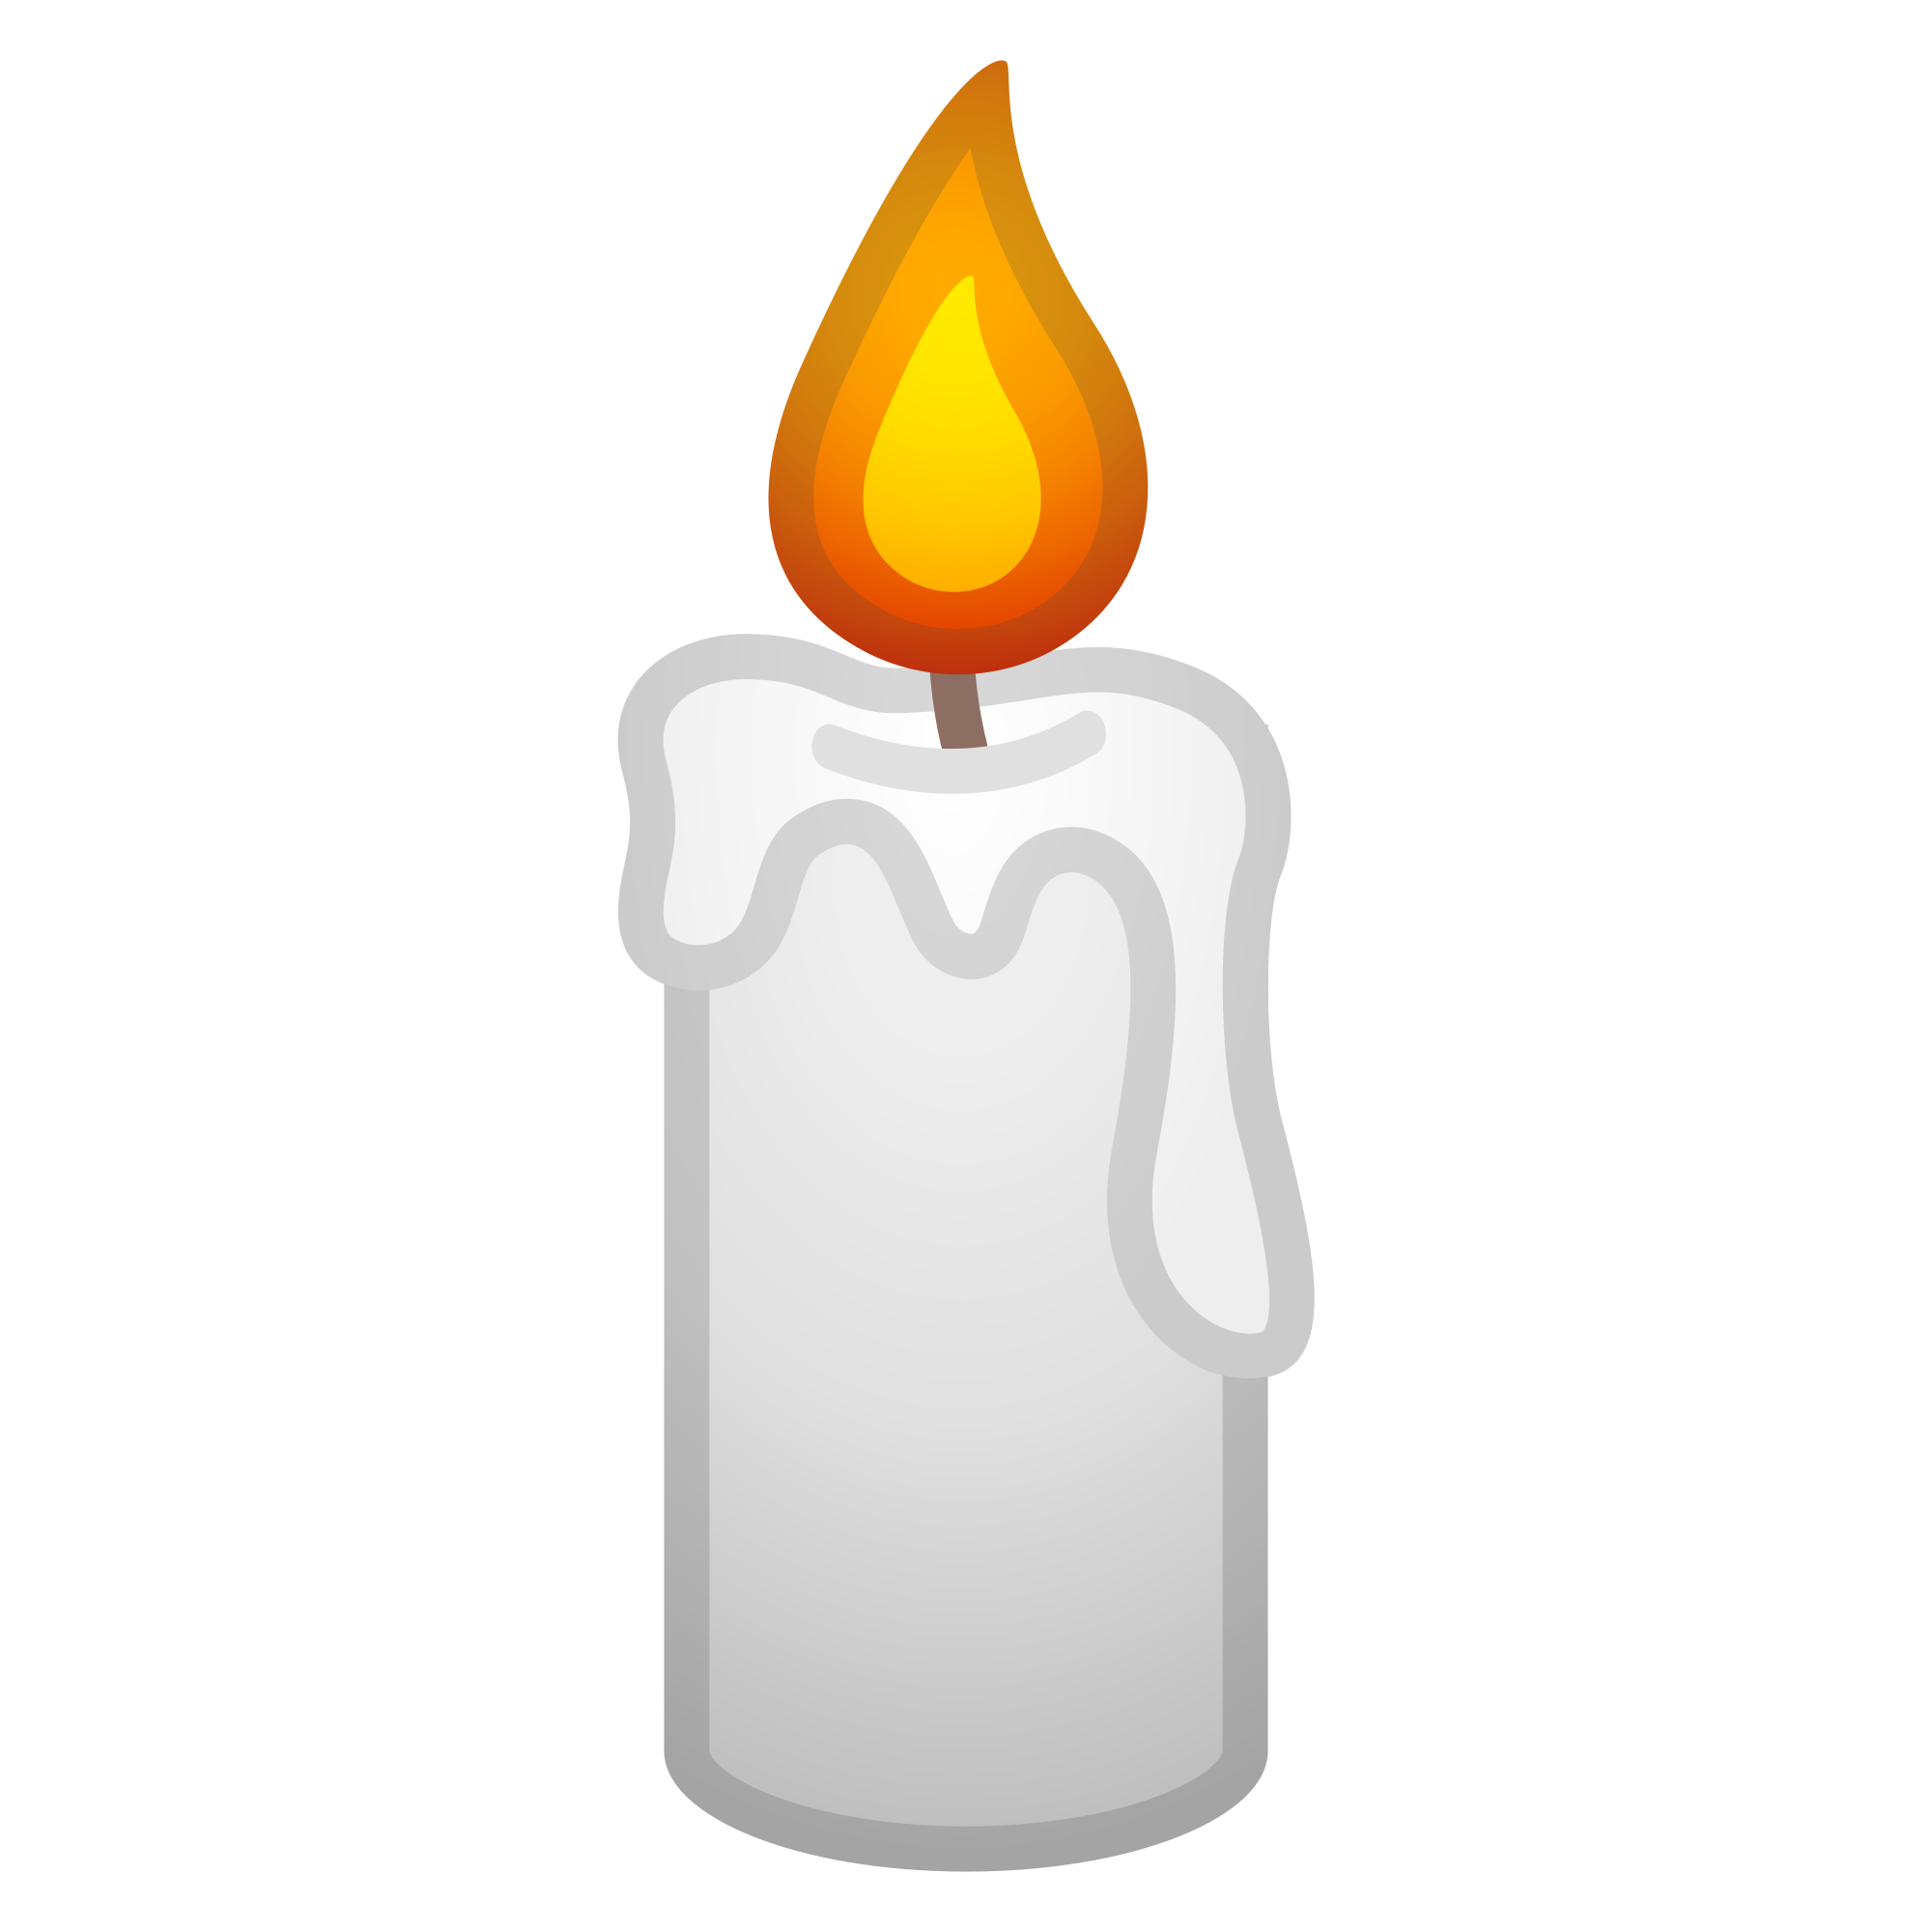 Clipart Candle Emoji Transparent FREE For